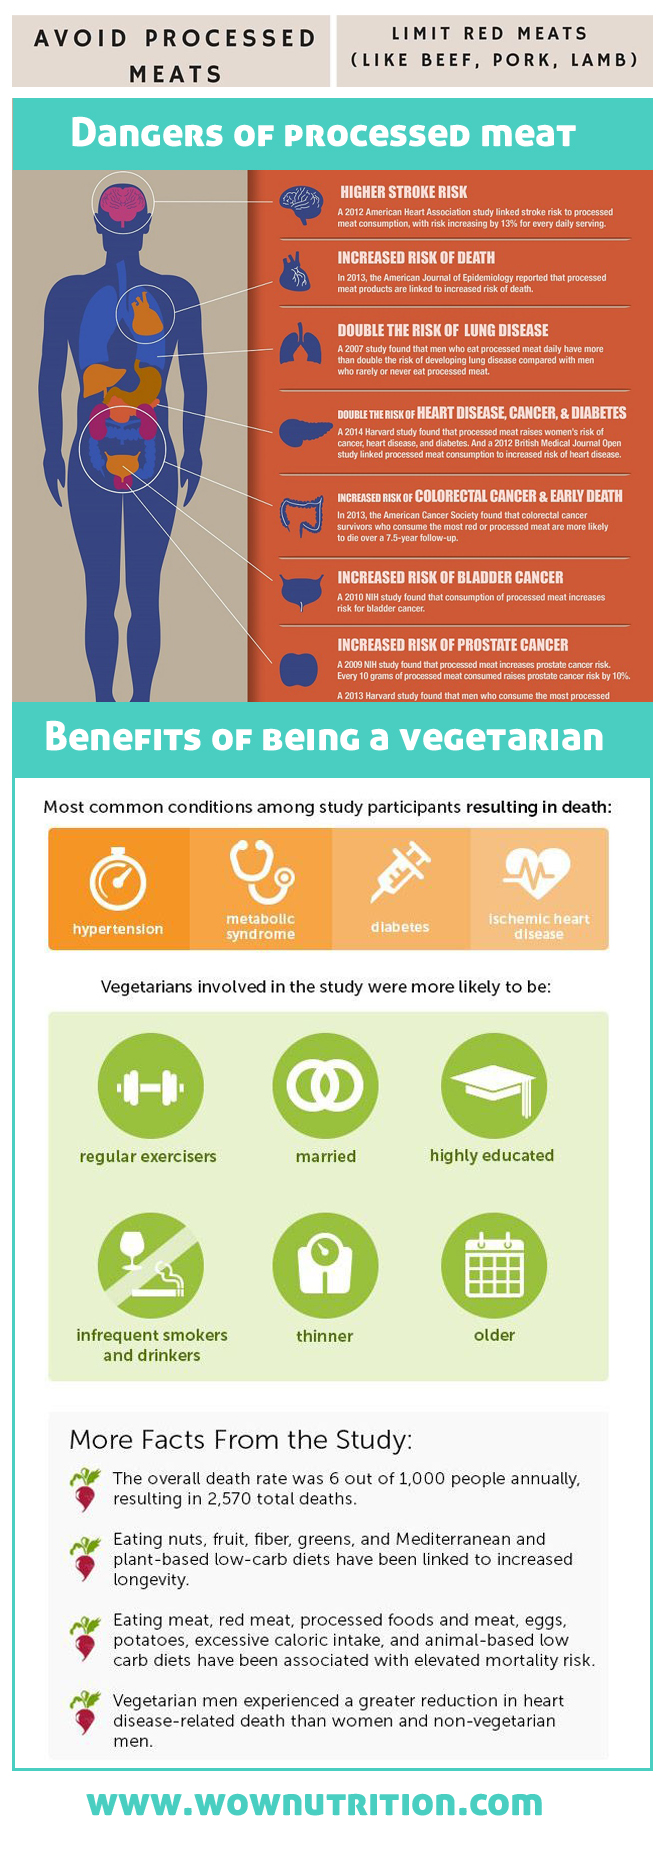 Benefits of being a vegetarian